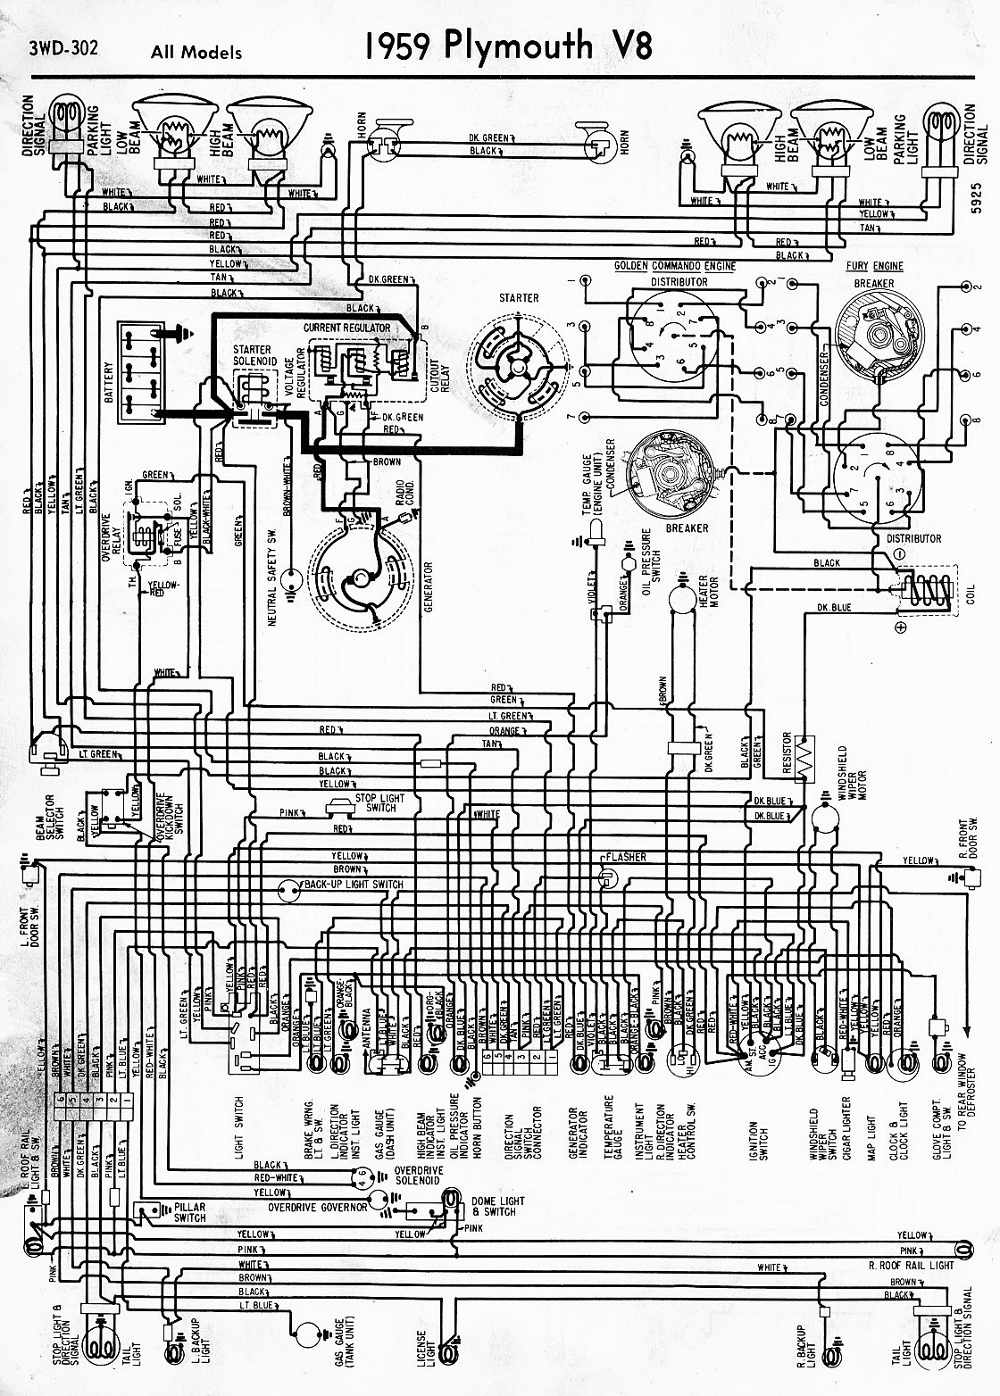 Plymouth Car Manuals Wiring Diagrams Pdf Fault Codes Of 1958 V8 All Models Download